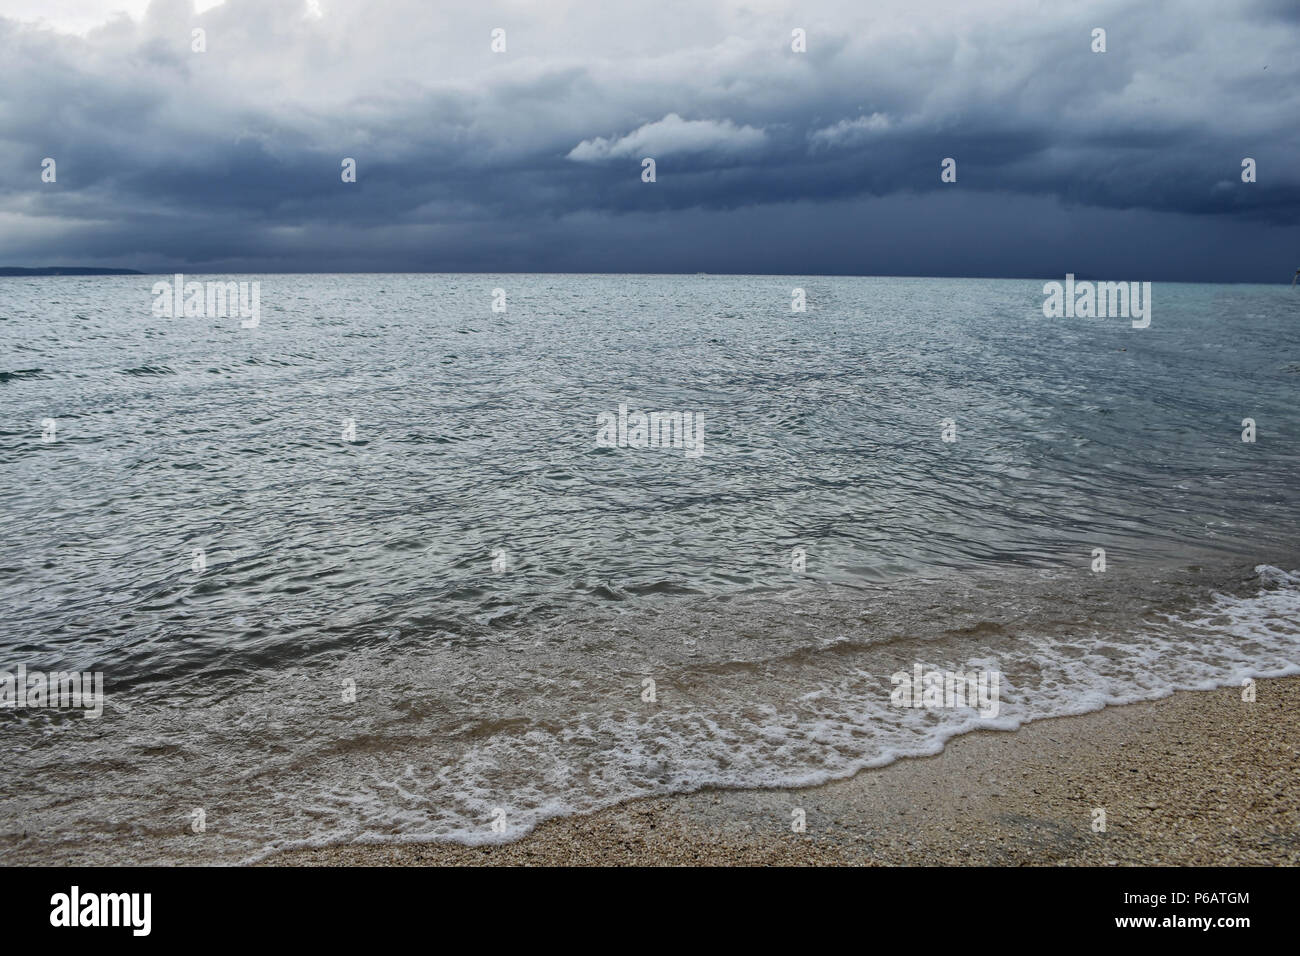 View from the beach at blue sea with little wave background - Stock Image